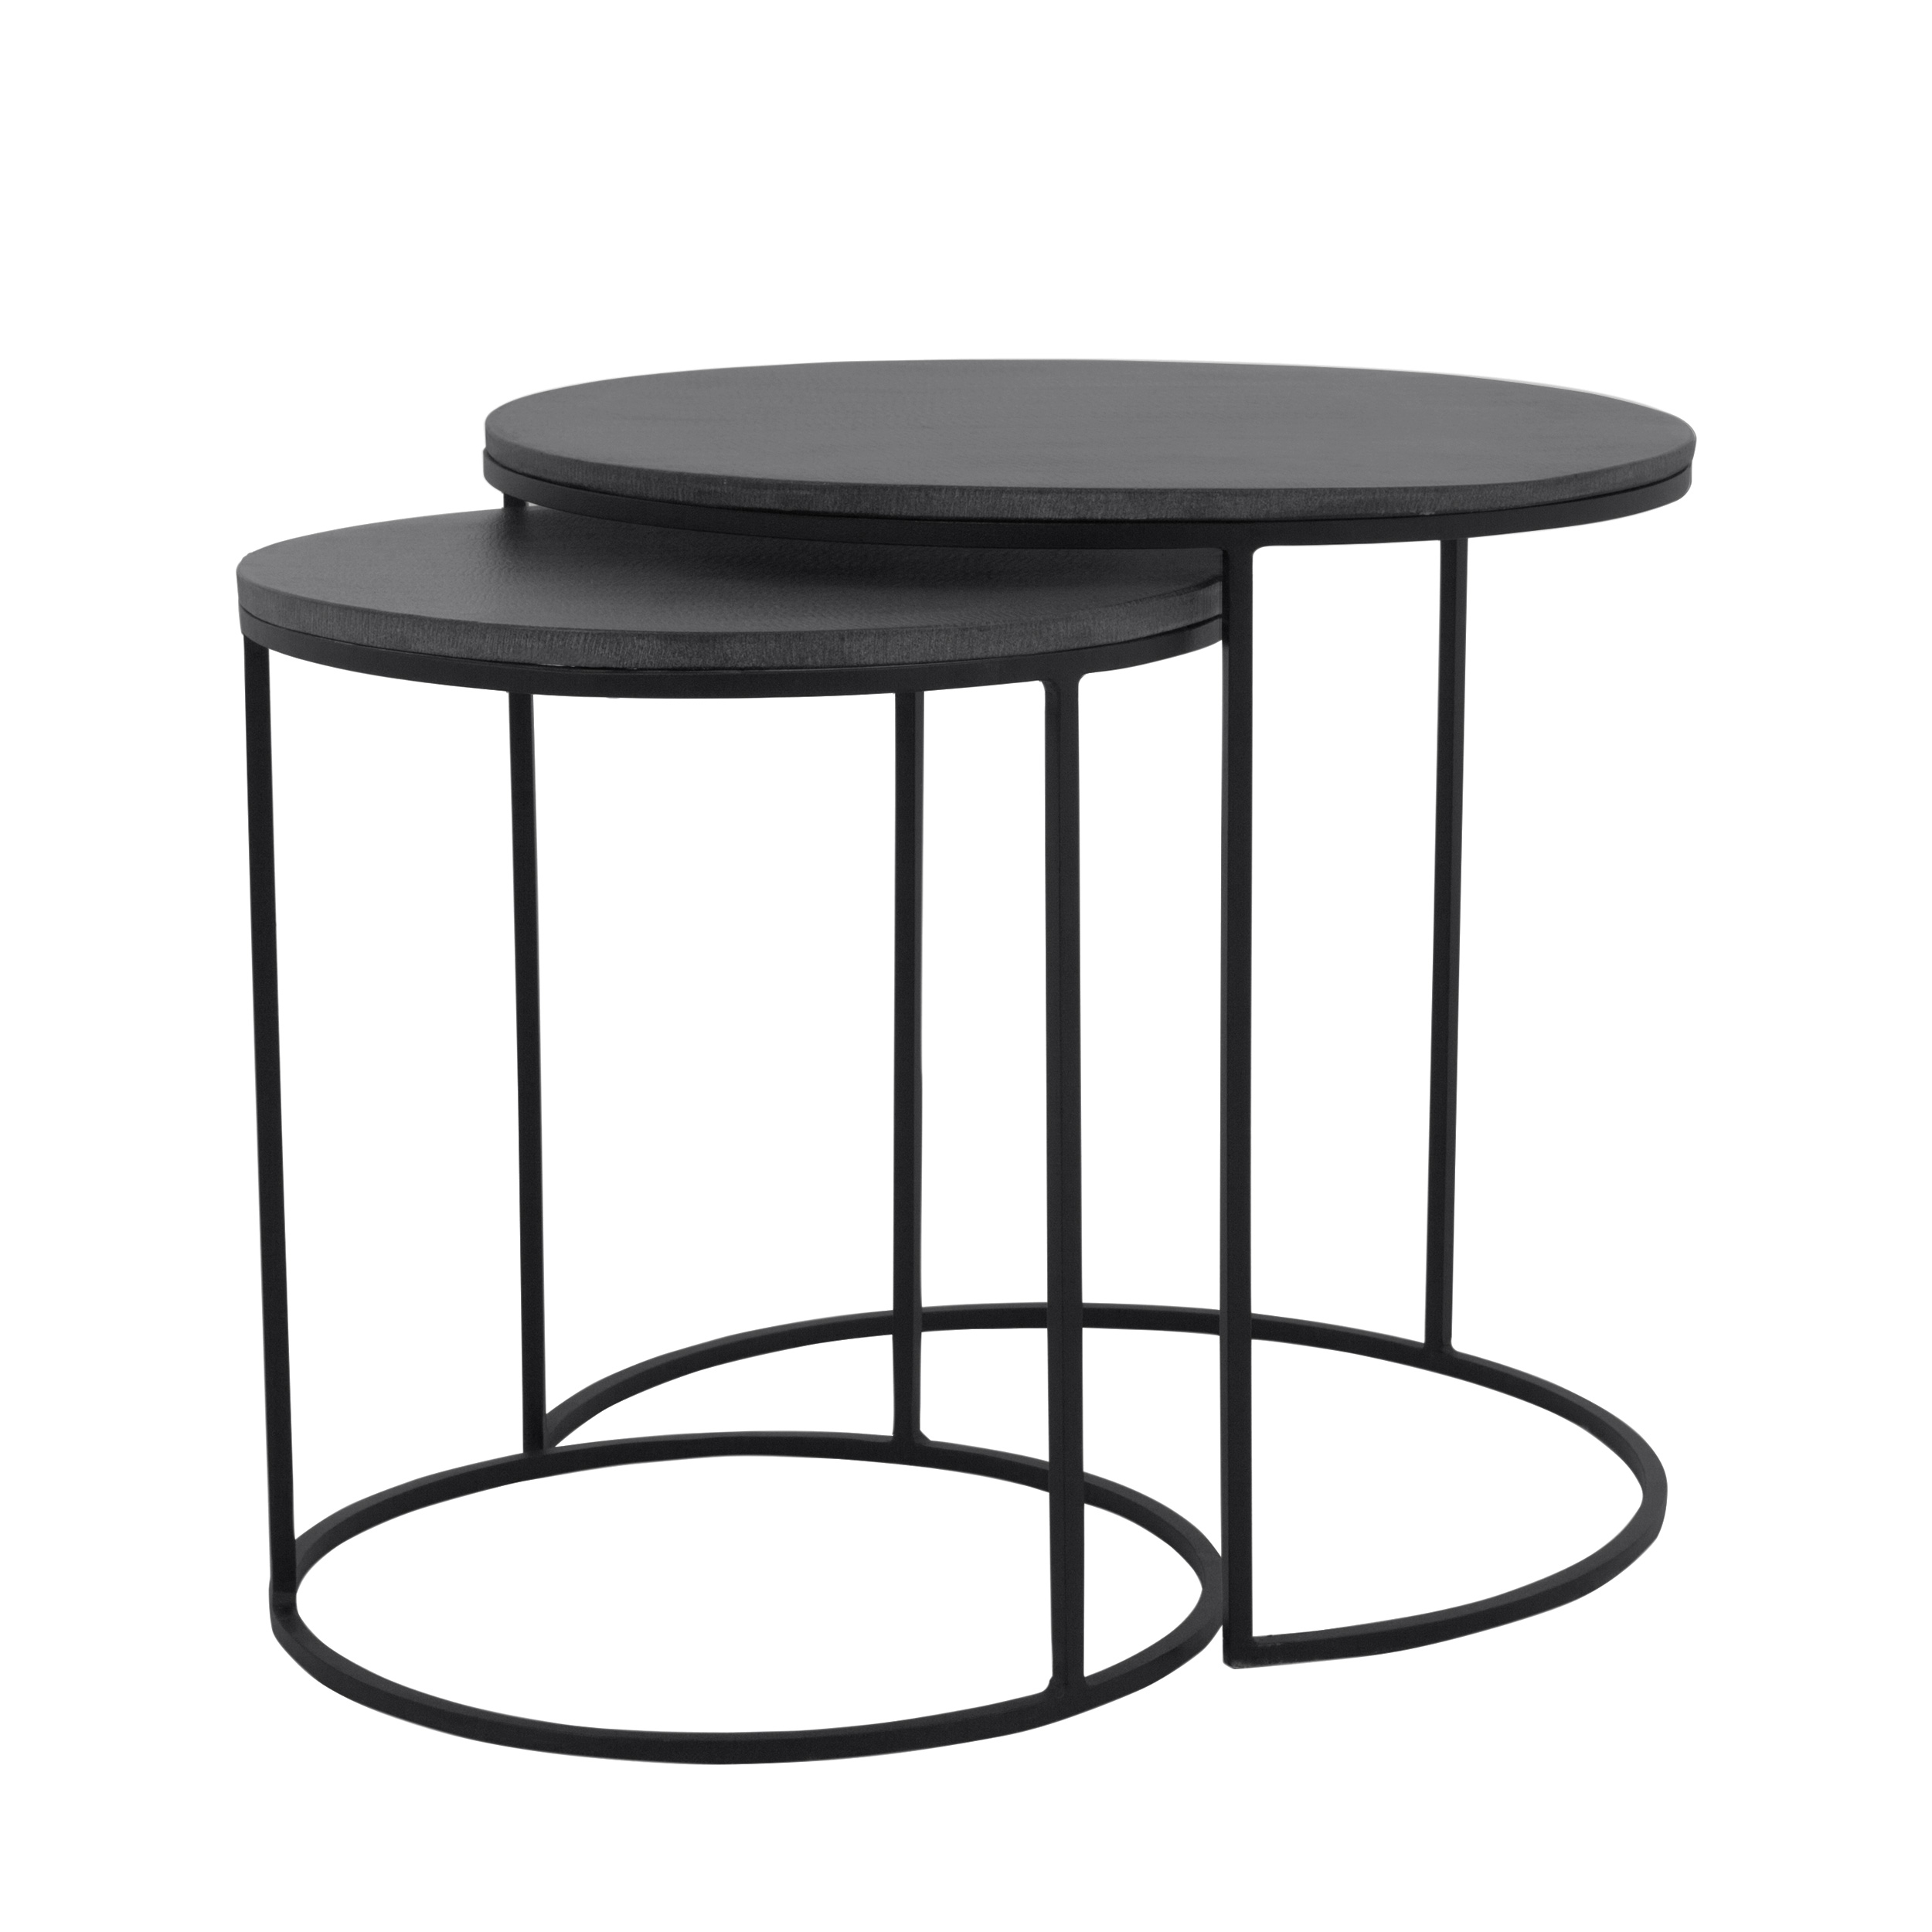 Table basse gigogne ronde en lavastone (lot de 2)